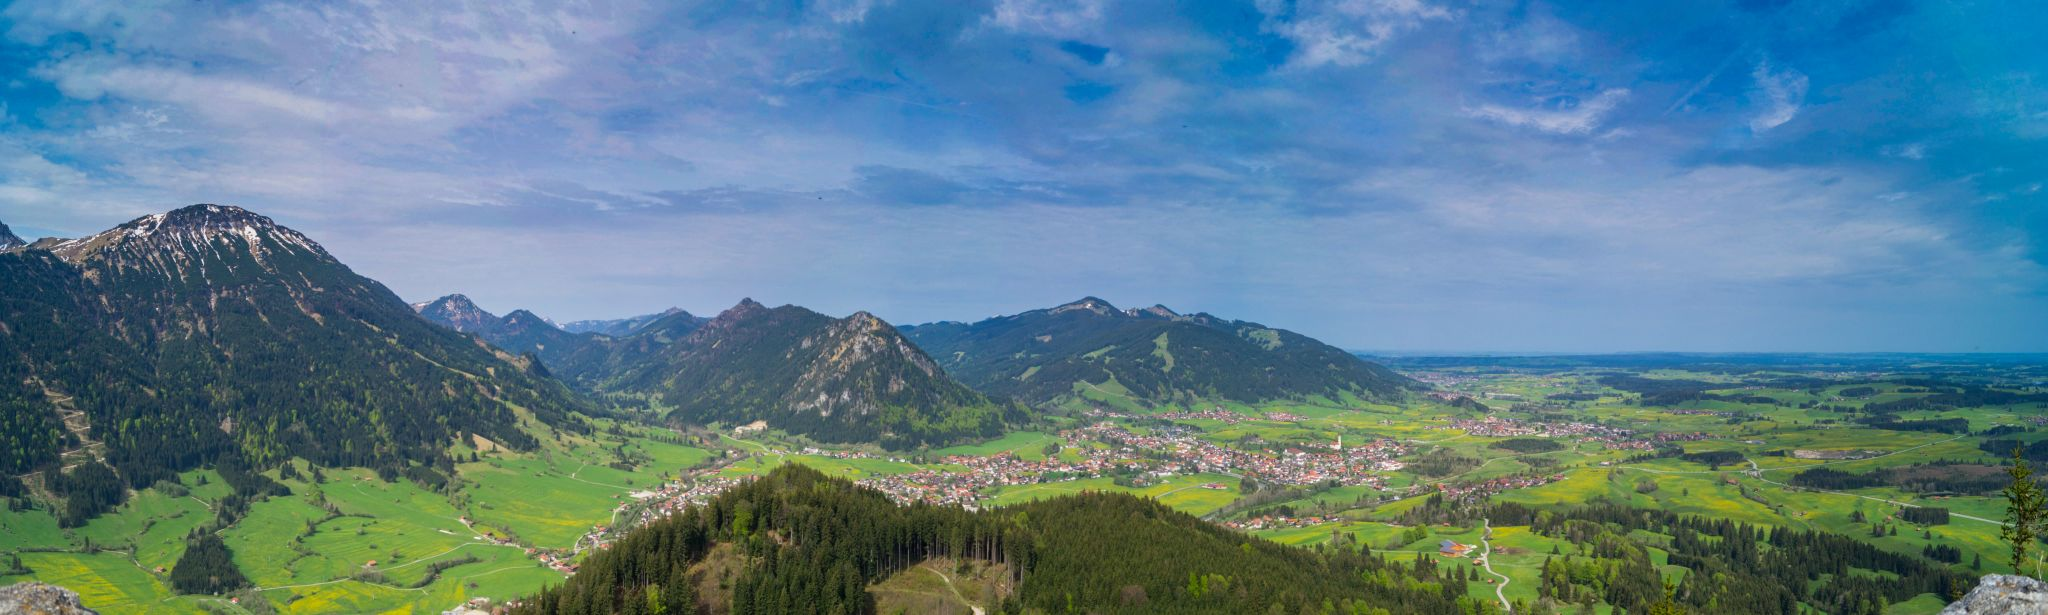 View over Pfronten from castle ruin 'Falkenstein', Germany